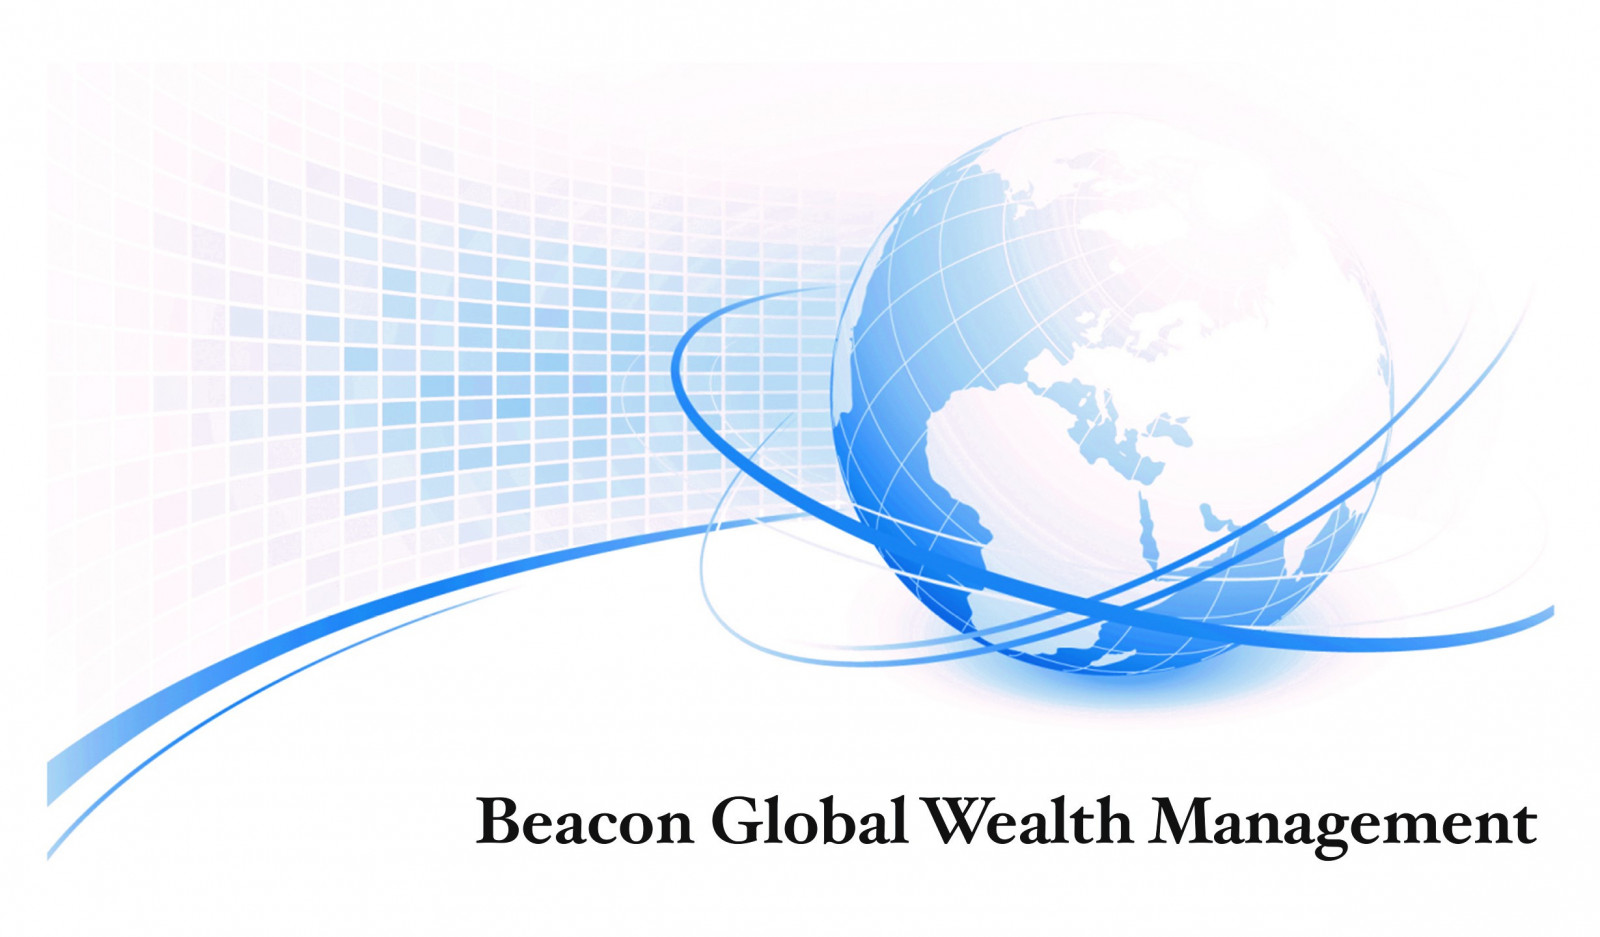 Beacon Global Wealth